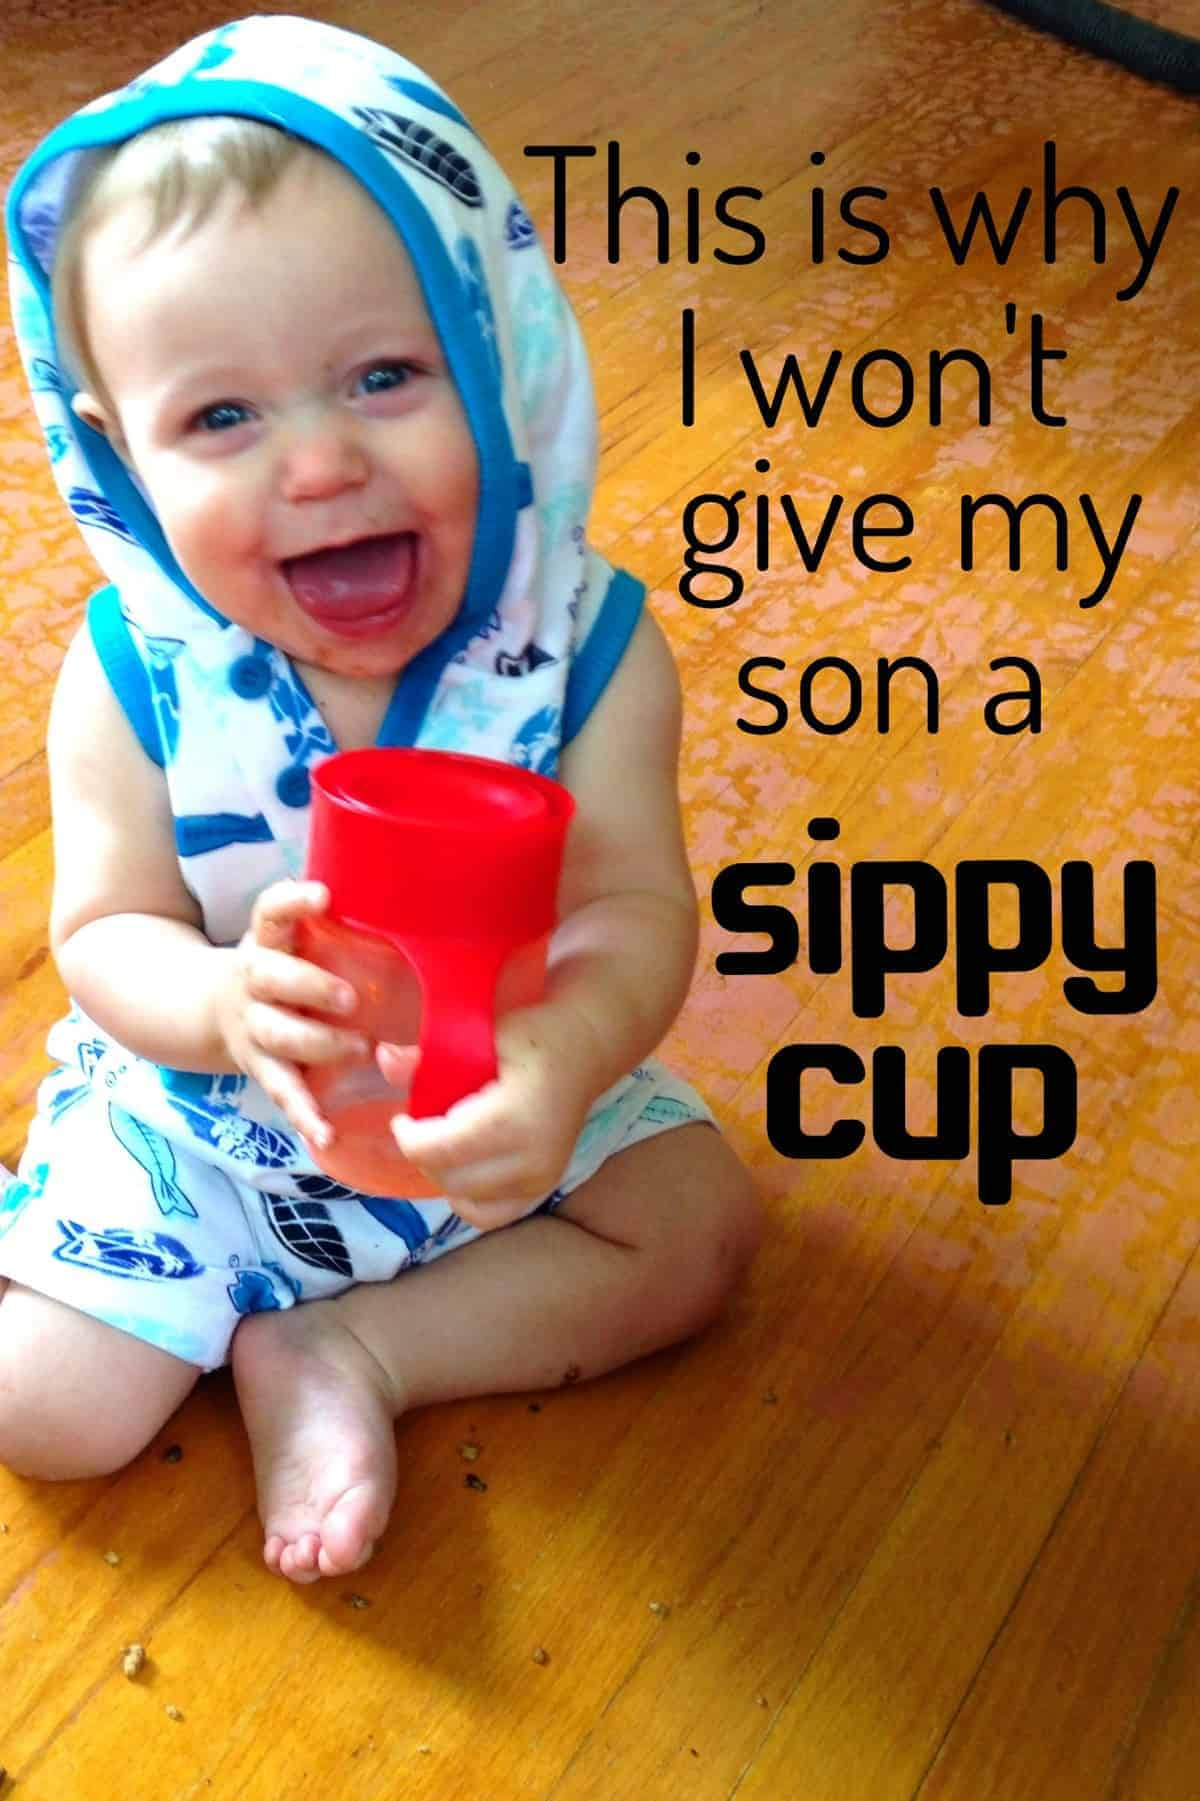 This is why I won't give my son a sippy cup